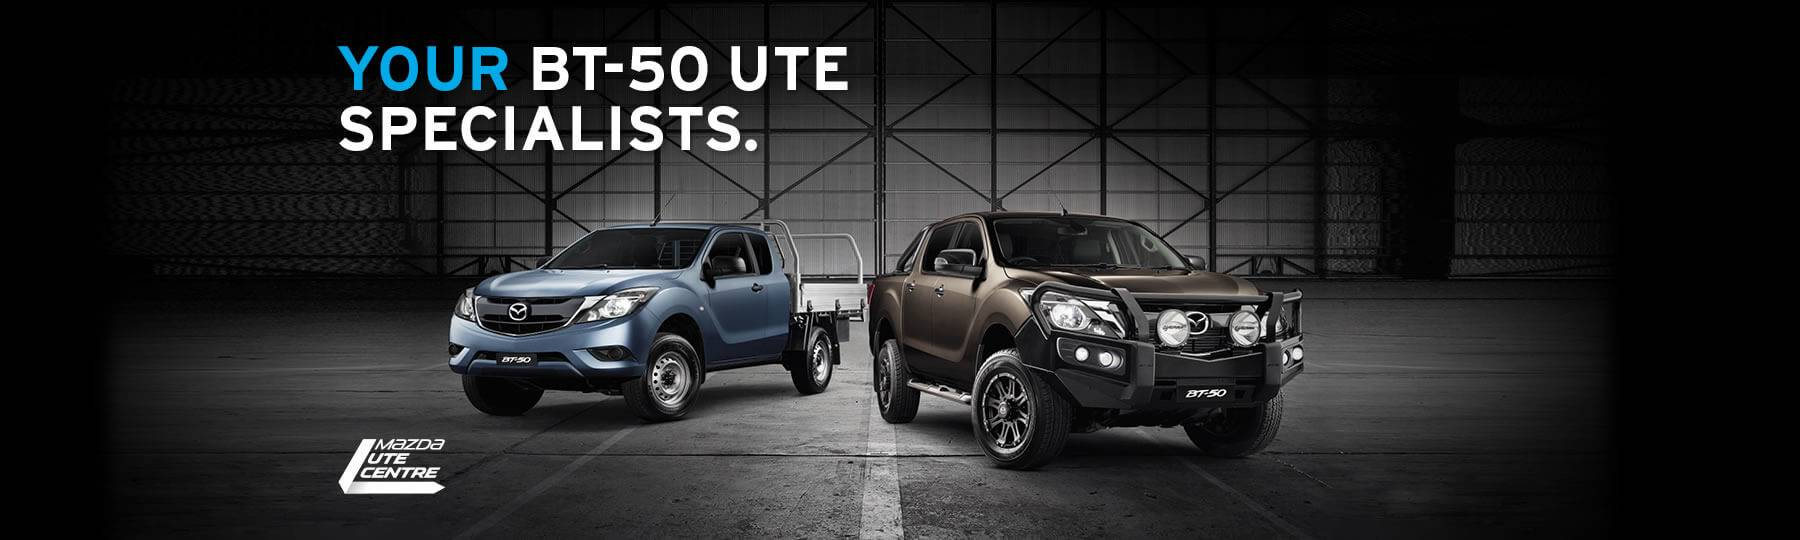 Ringwood Mazda - BT-50 Ute Specialists